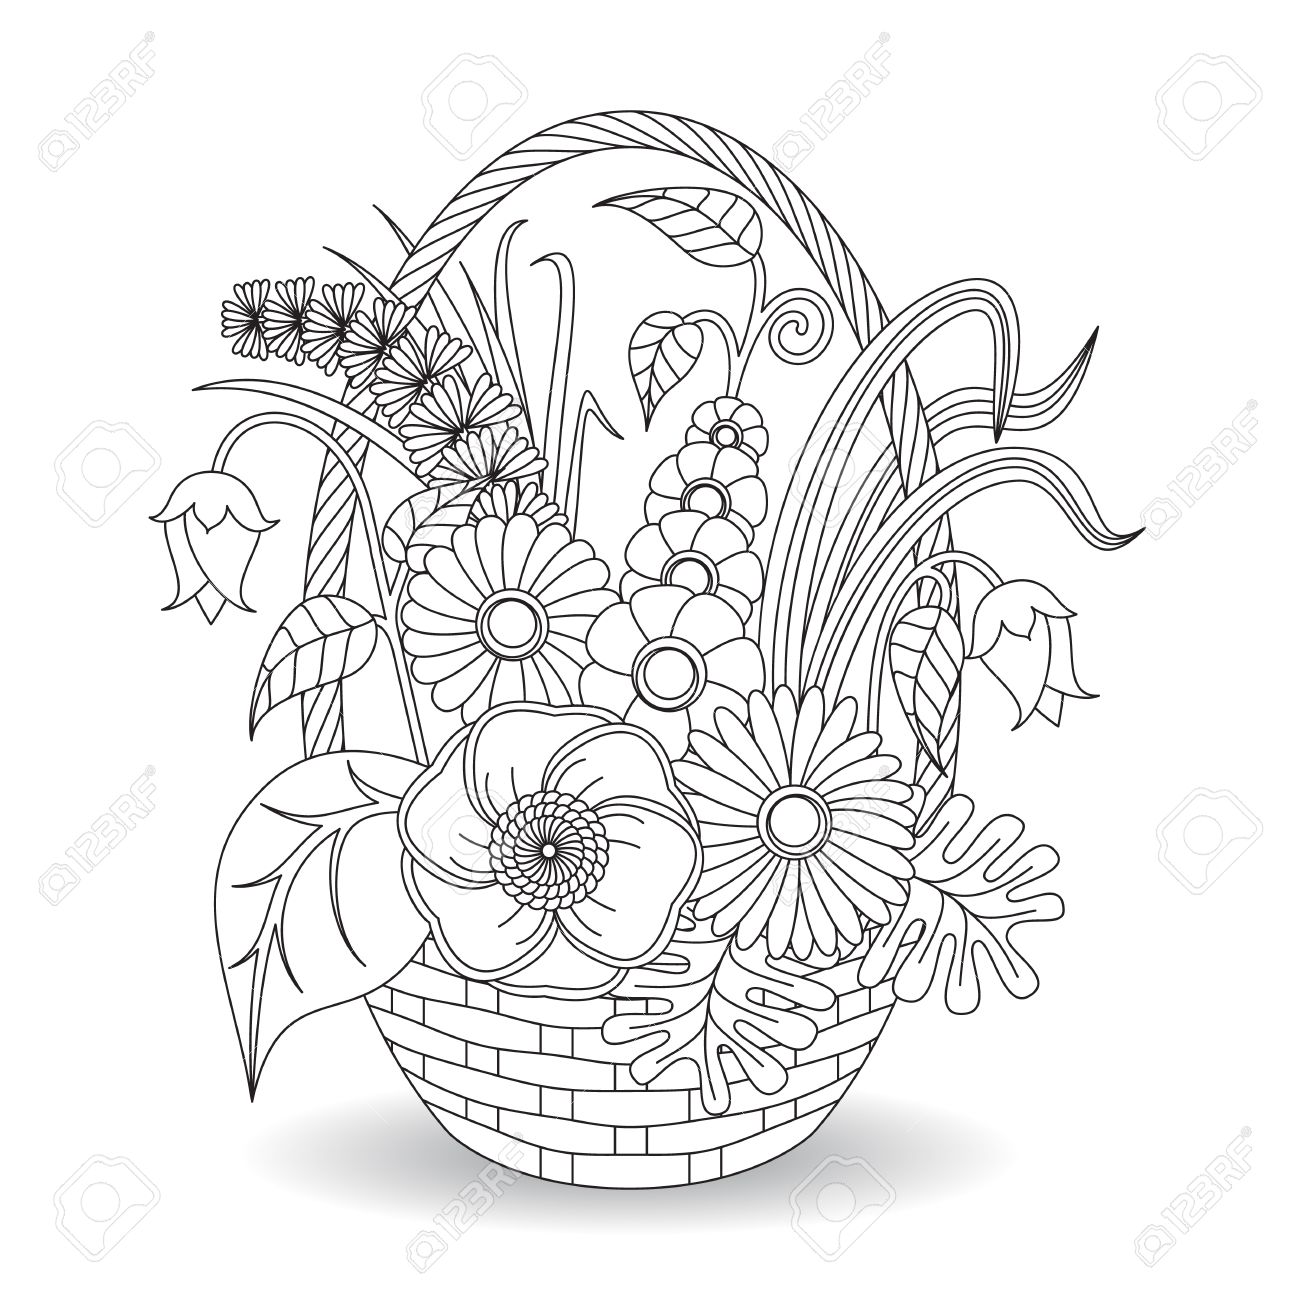 Doodle Art Flowers Floral Pattern. Coloring Page Template. Royalty ...